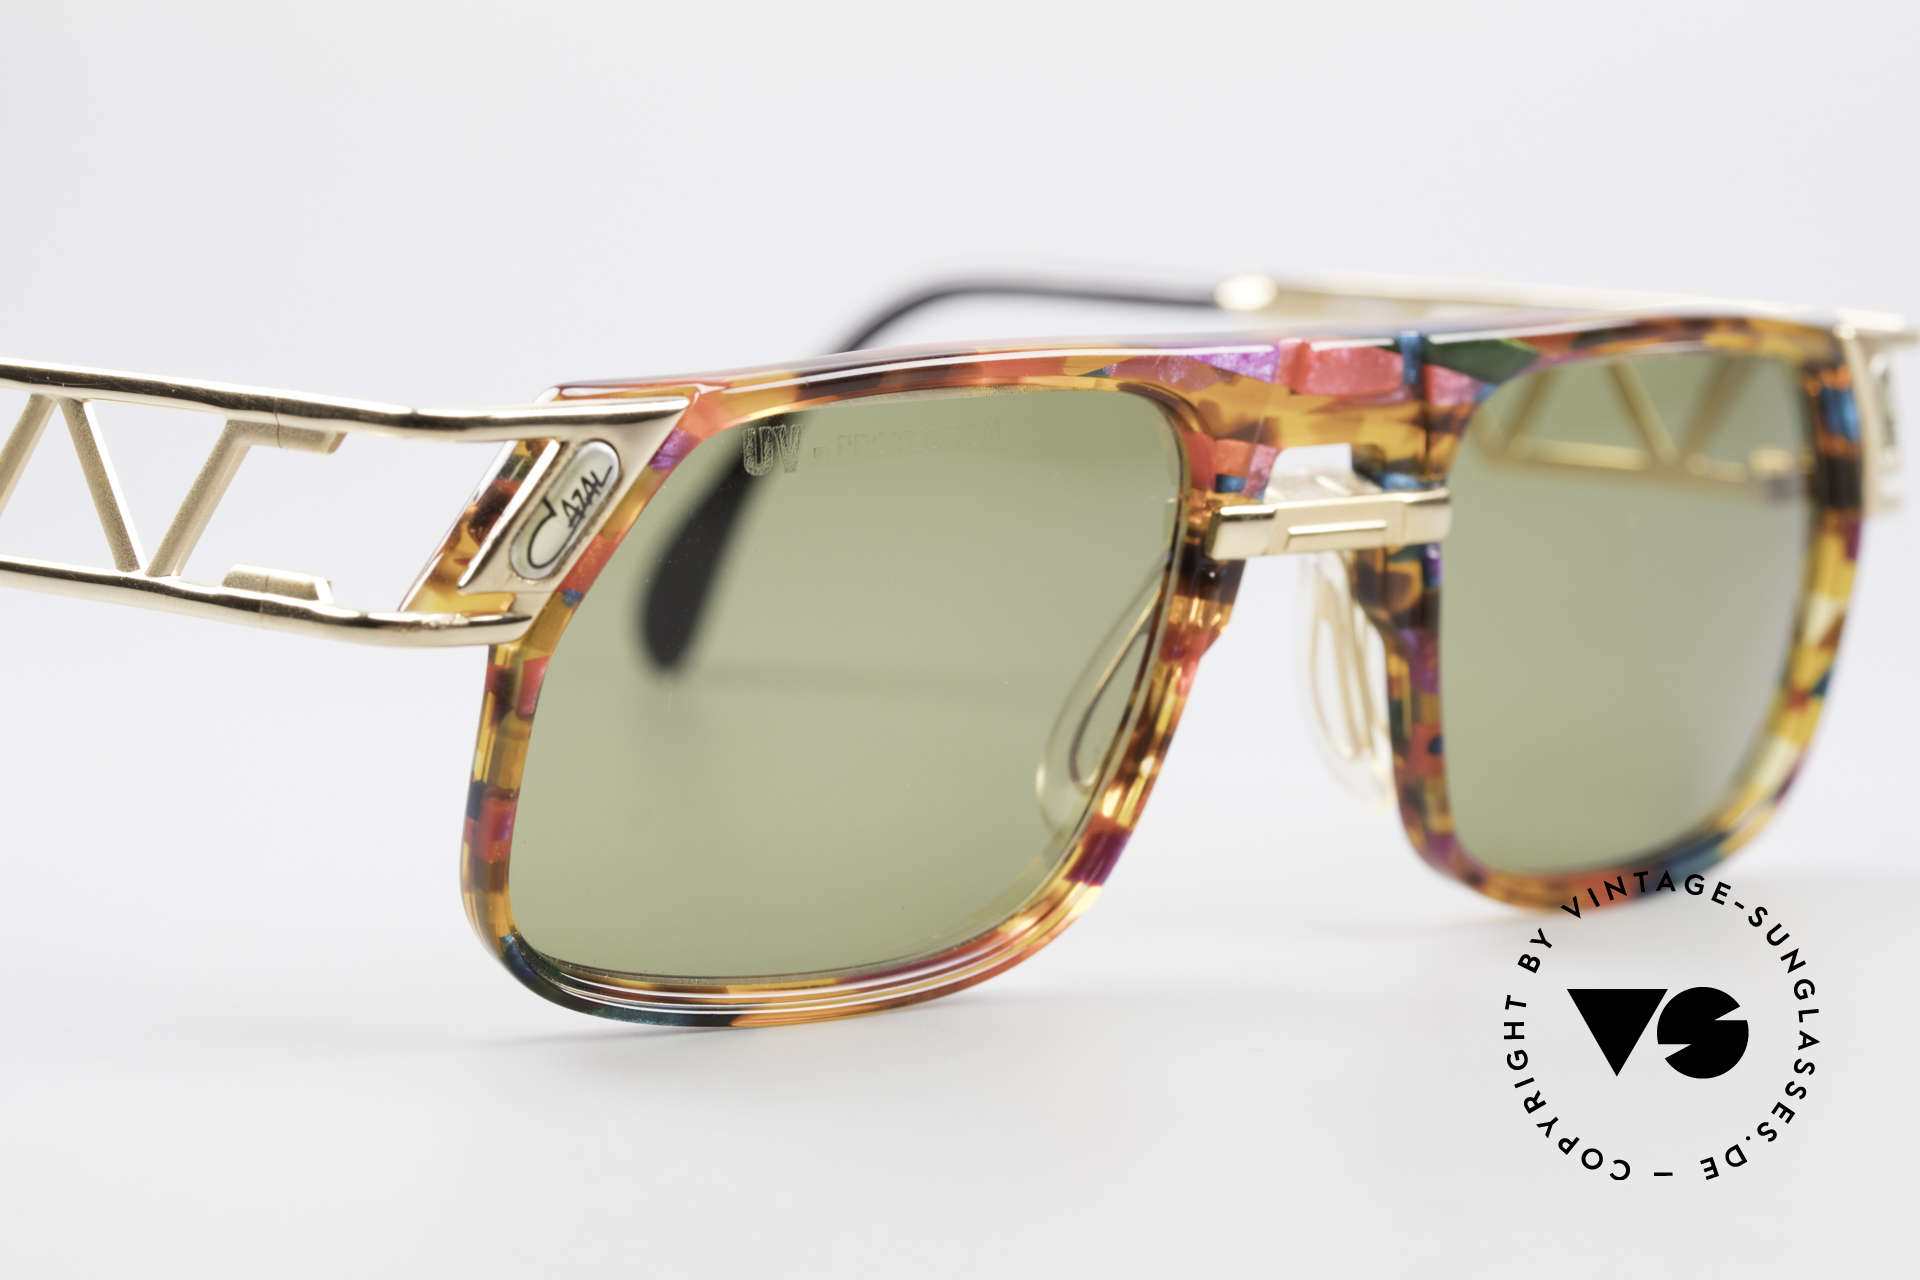 Cazal 876 90's Designer Vintage Shades, never worn (like all our rare vintage designer sunglasses), Made for Men and Women